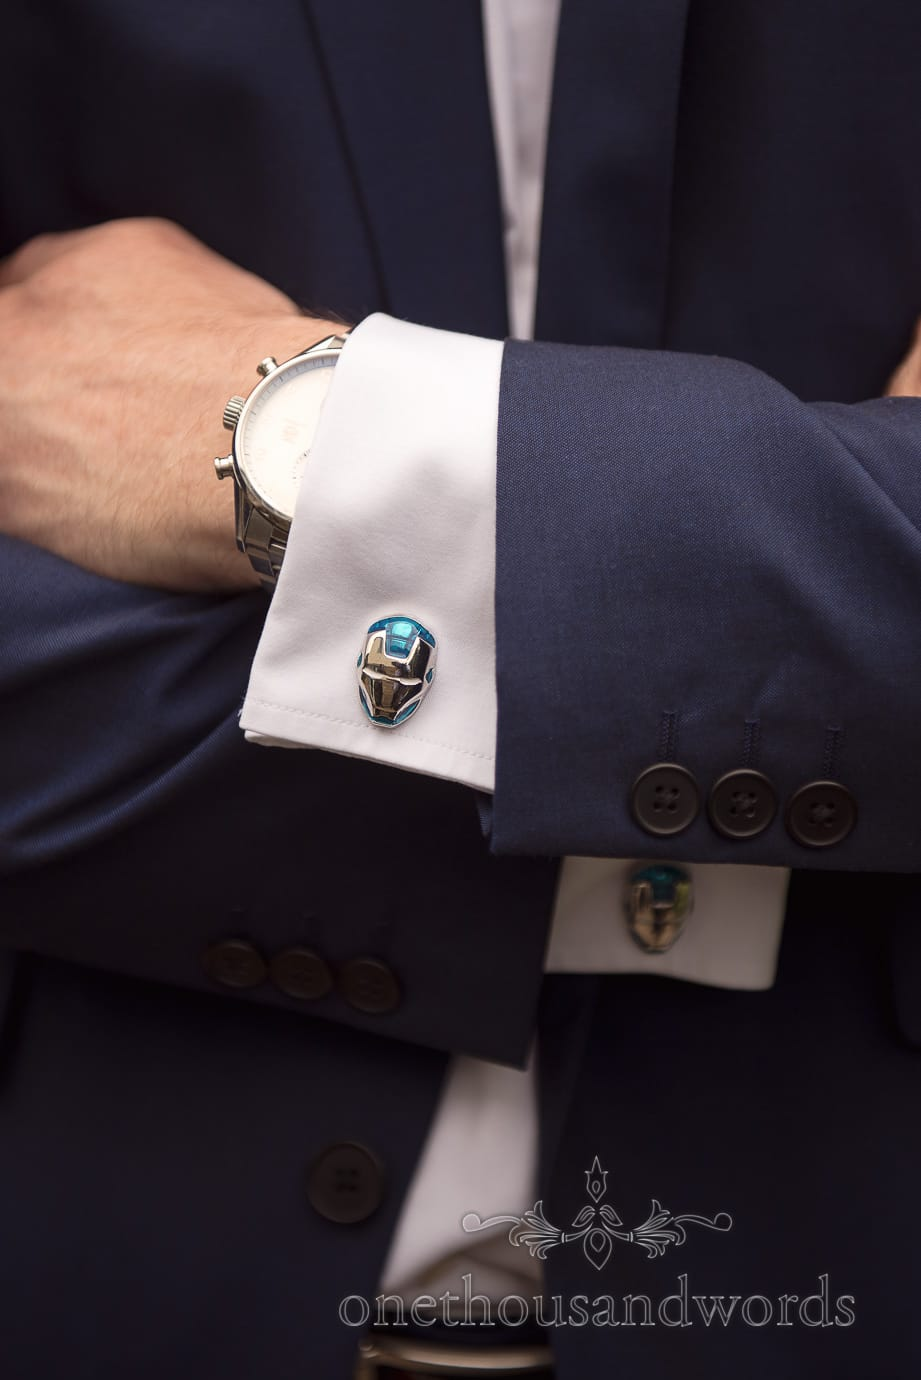 Iron man wedding cufflinks with grooms man's blue wedding suit and watch